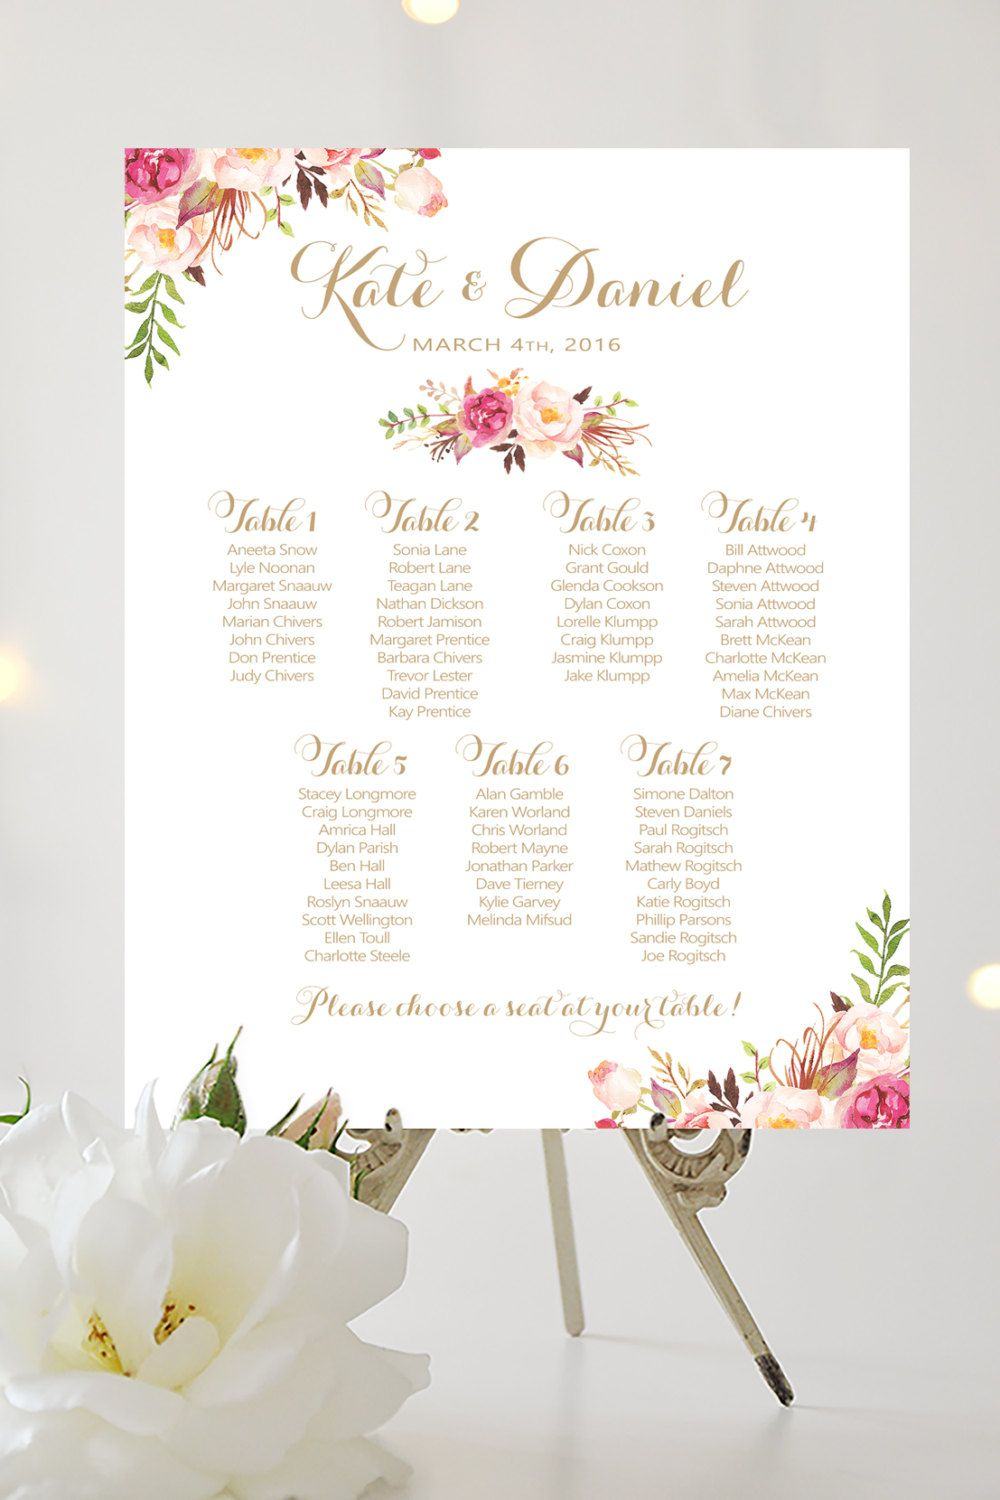 Wedding Seating Chart   By Table   Various Sizes   Vintage   Antique ...